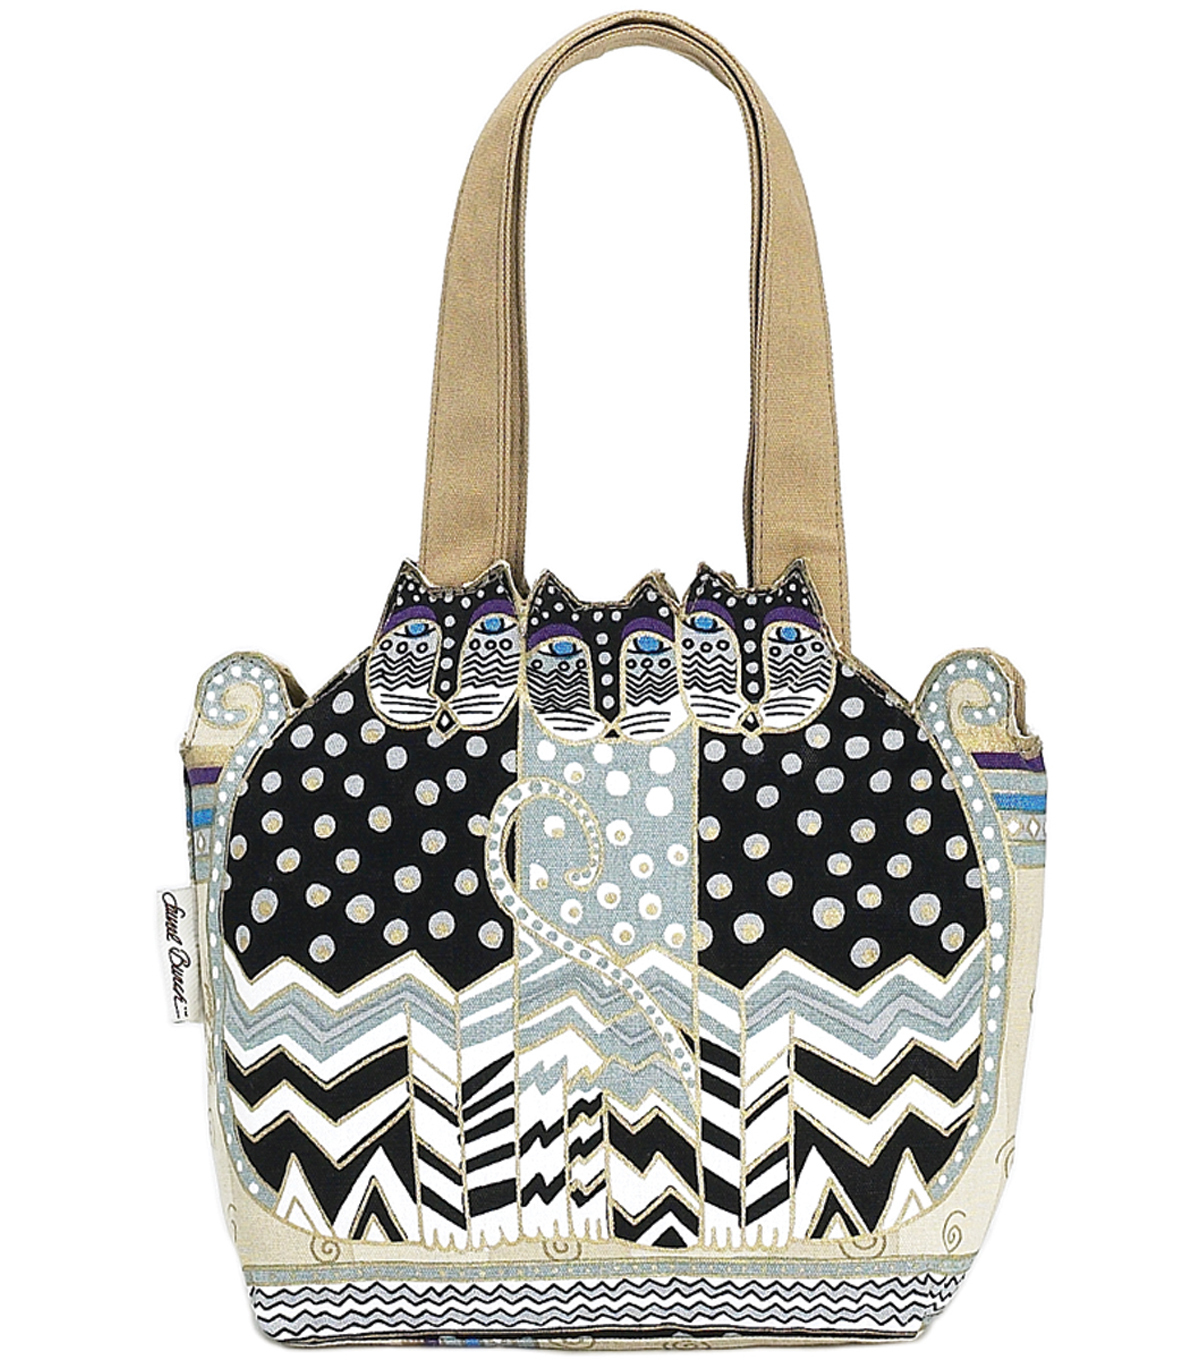 Laurel Burch Medium Tote 12\u0022x3.5\u0022x8.5\u0022-Tres Gatos: Black/White/Gray